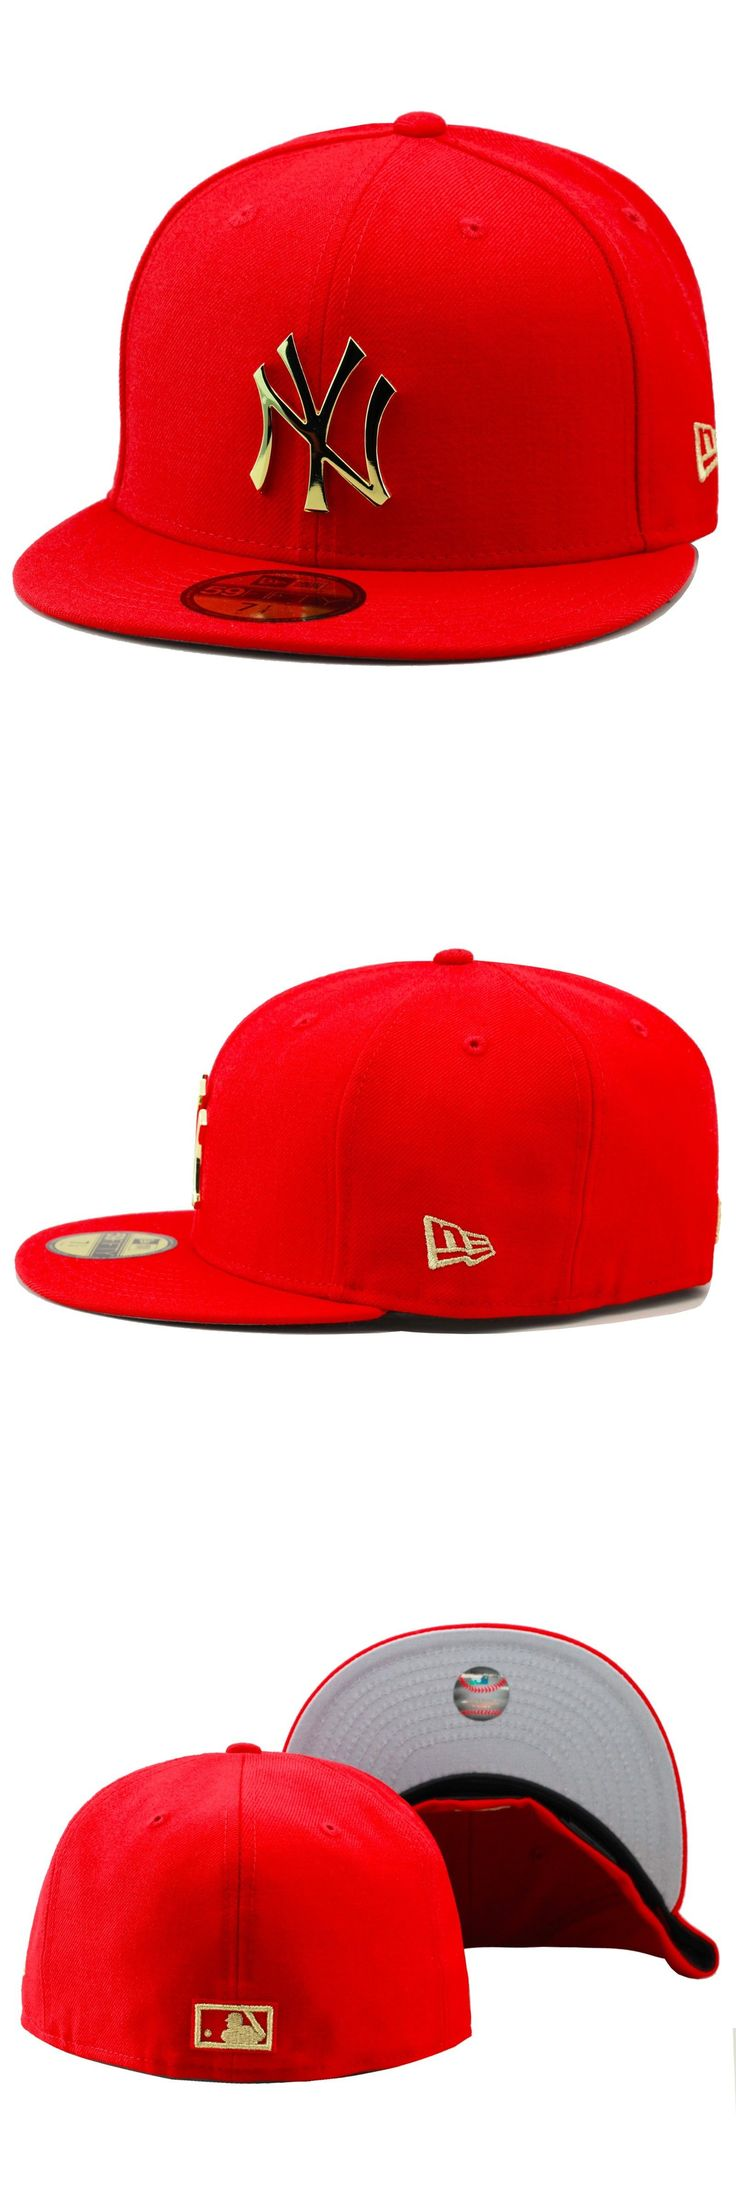 Hats 52365: New Era New York Yankees Fitted Hat Cap Red Gold Badge For Foamposite 1 Supreme -> BUY IT NOW ONLY: $59 on eBay!